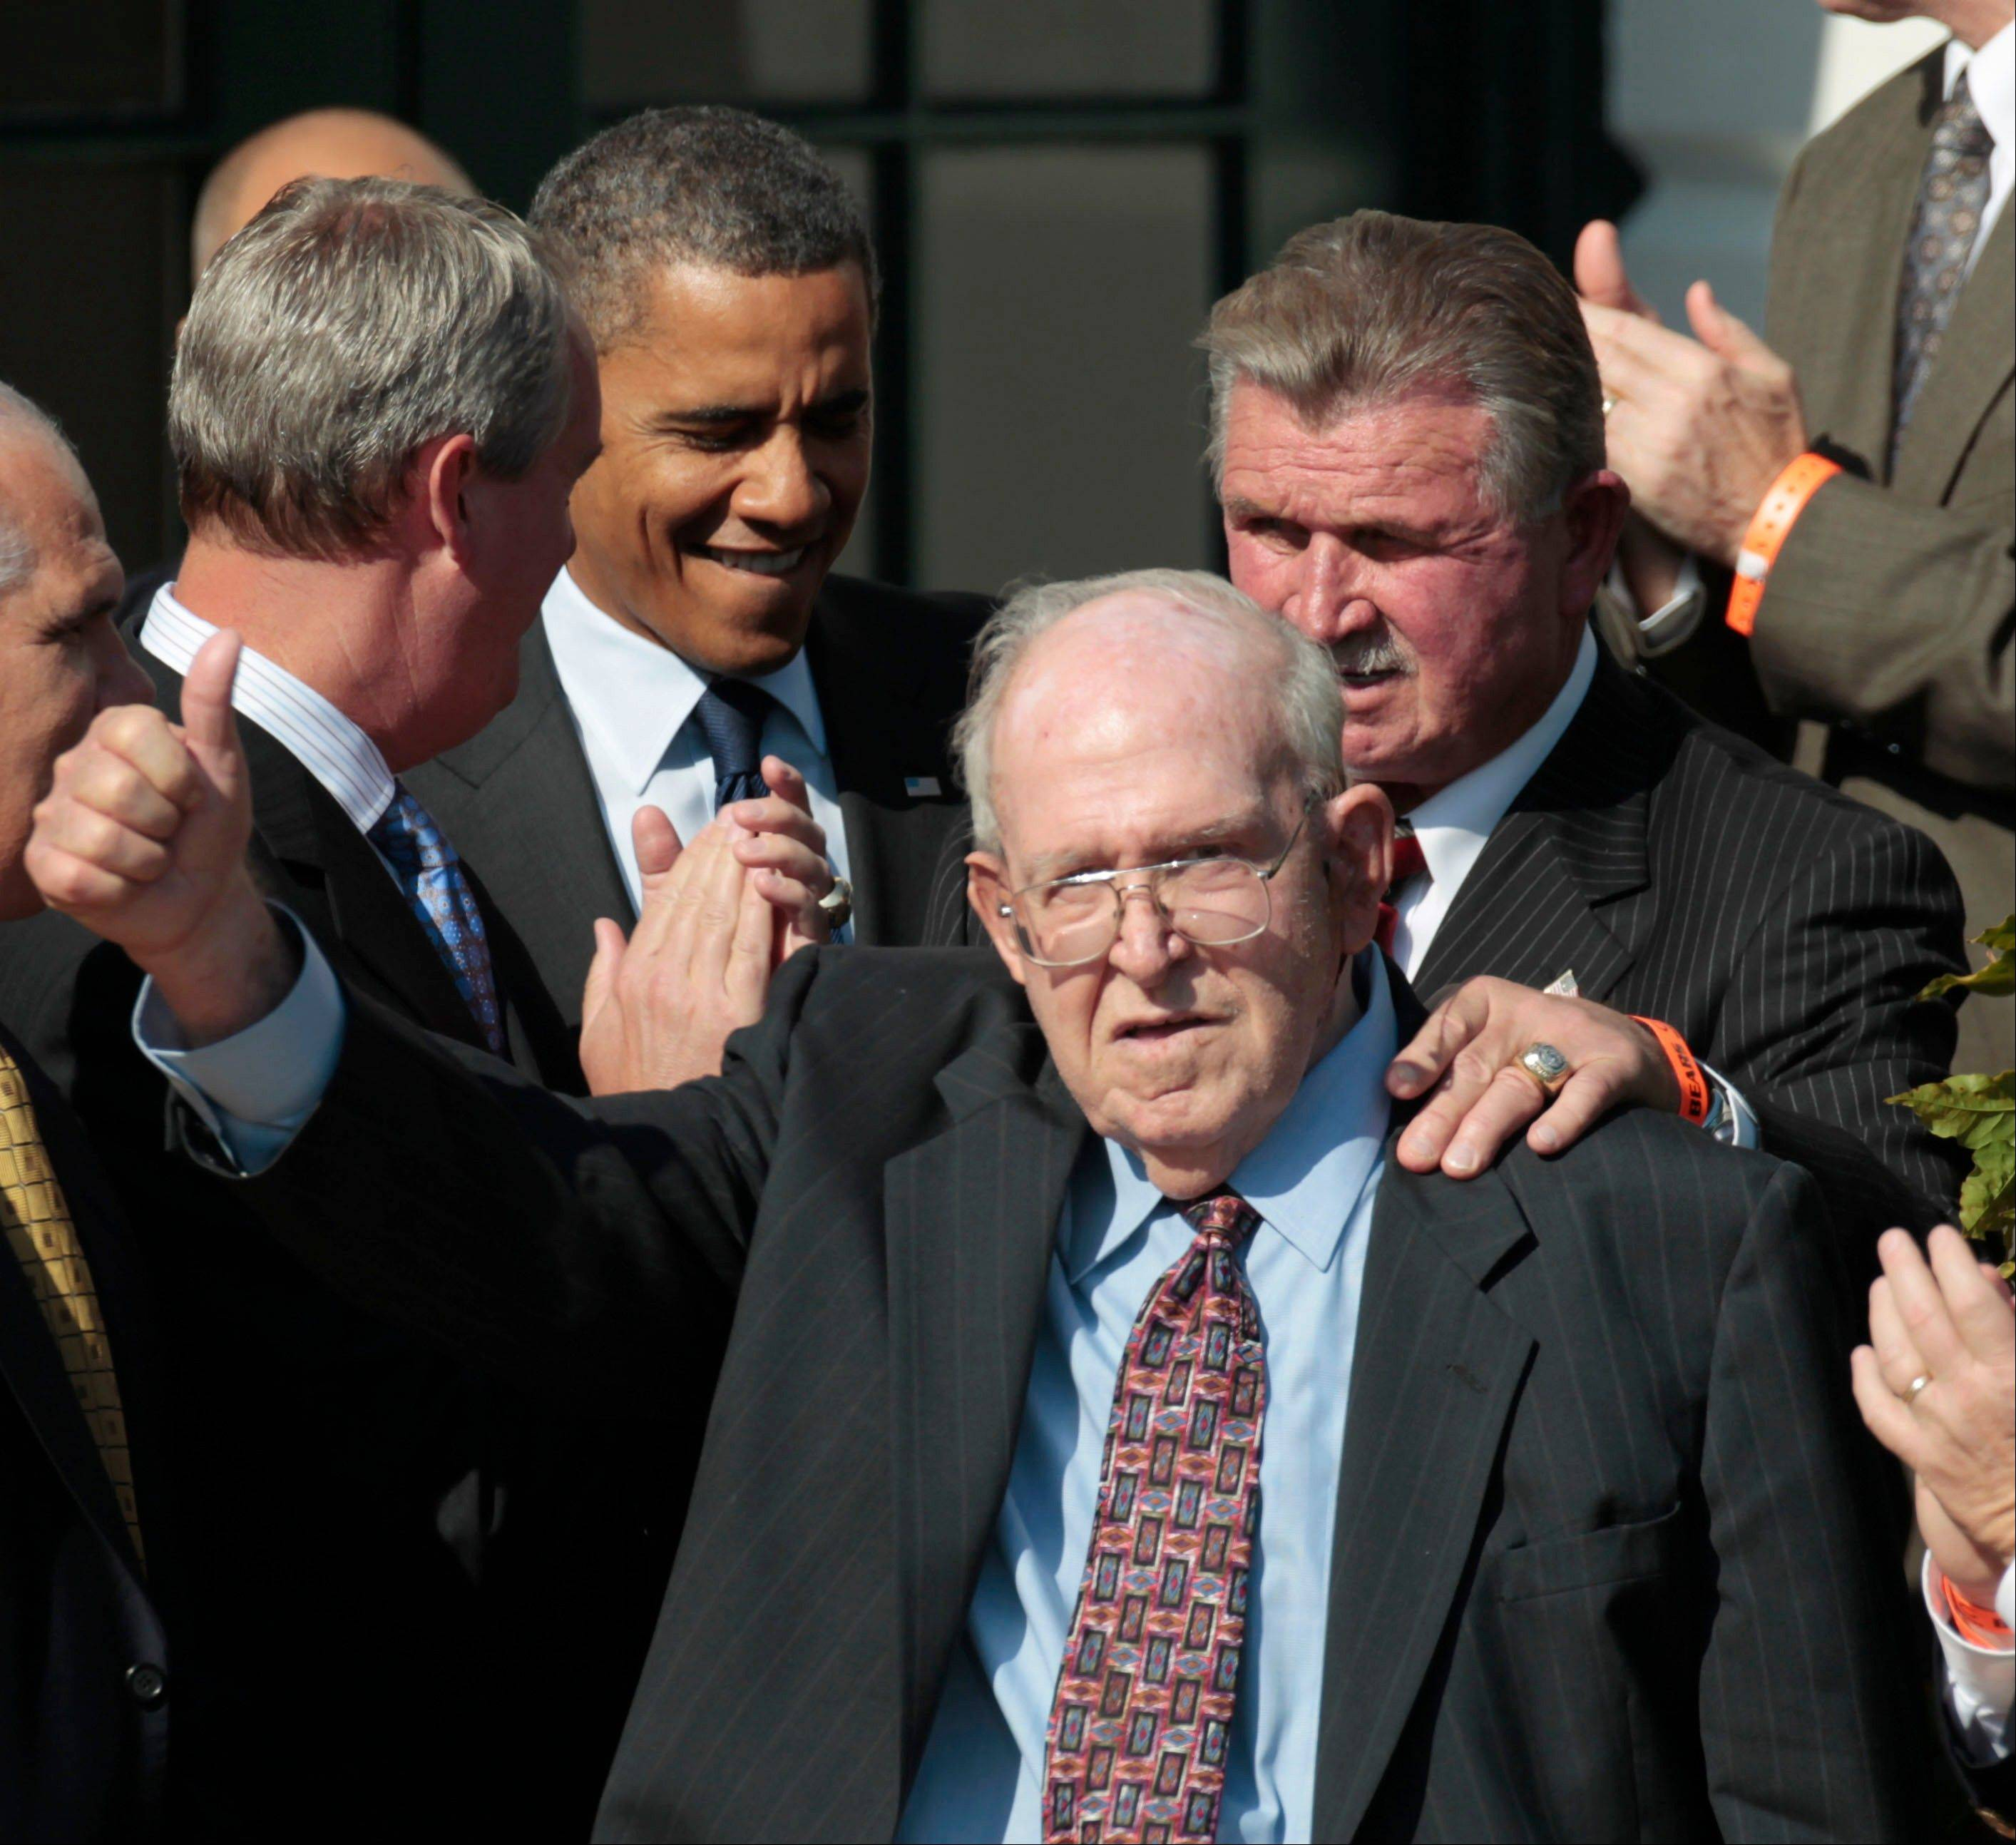 Former Bears' defensive coordinator Buddy Ryan, gives a 'thumbs-up' as he walks in with former head coach Mike Ditka, and President Barack Obama, during an event honoring the 1985 Super Bowl XX Champions Chicago Bears football team during a ceremony on the South Lawn of the White House in Washington, Friday, Oct. 7, 2011.